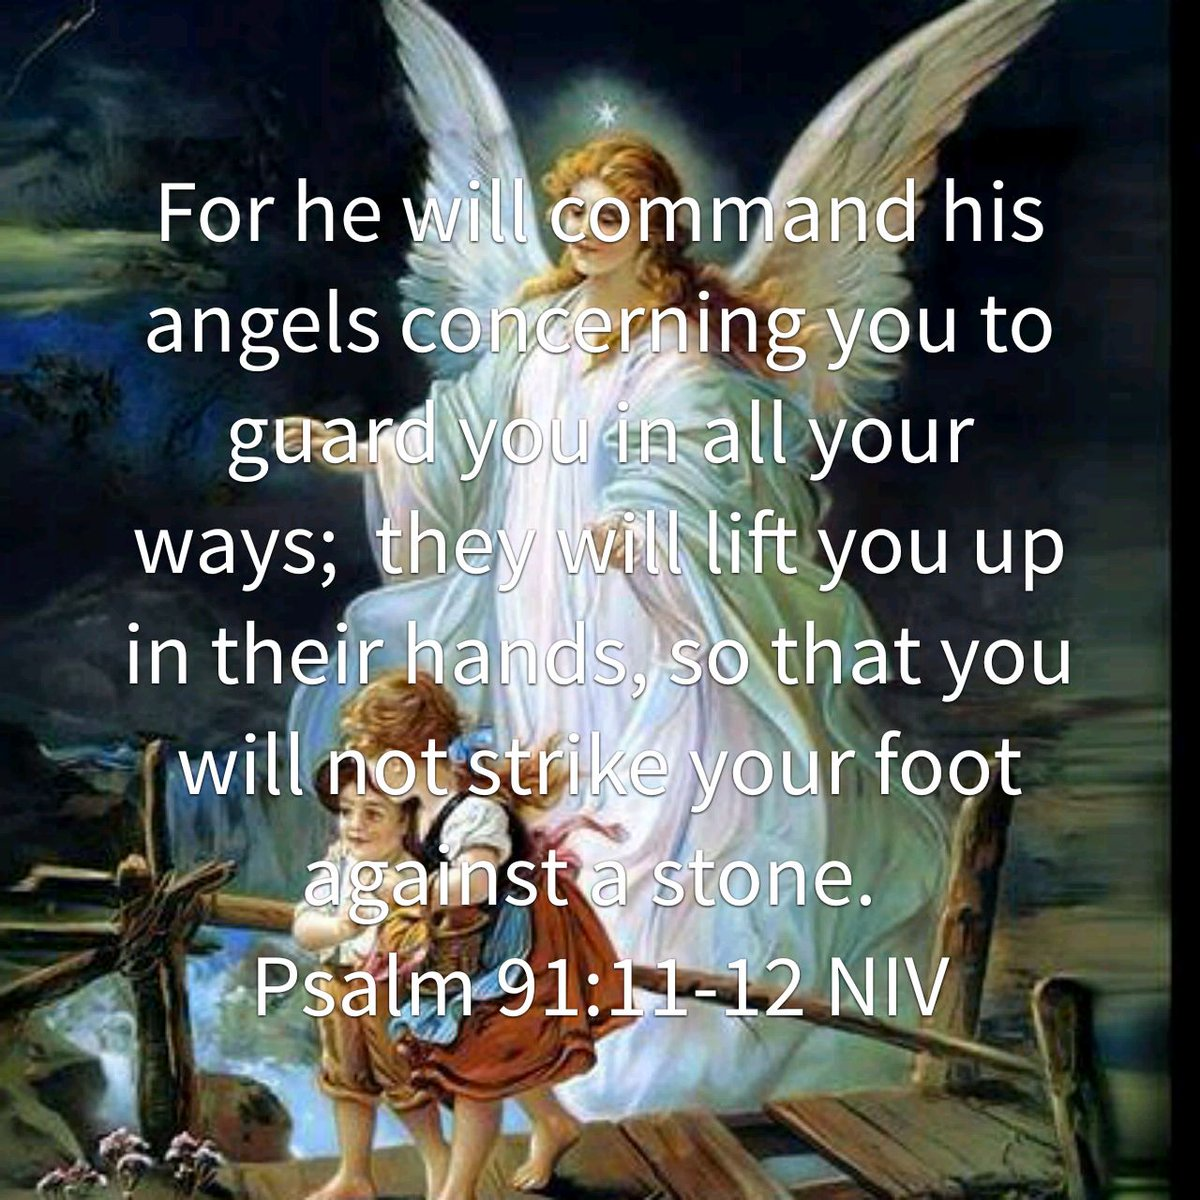 Eddie Moser On Twitter For He Will Command His Angels Concerning You To Guard You In All Your Ways They Will Lift Y Https T Co Ccin6ra7r8 Https T Co 3duhfthug8